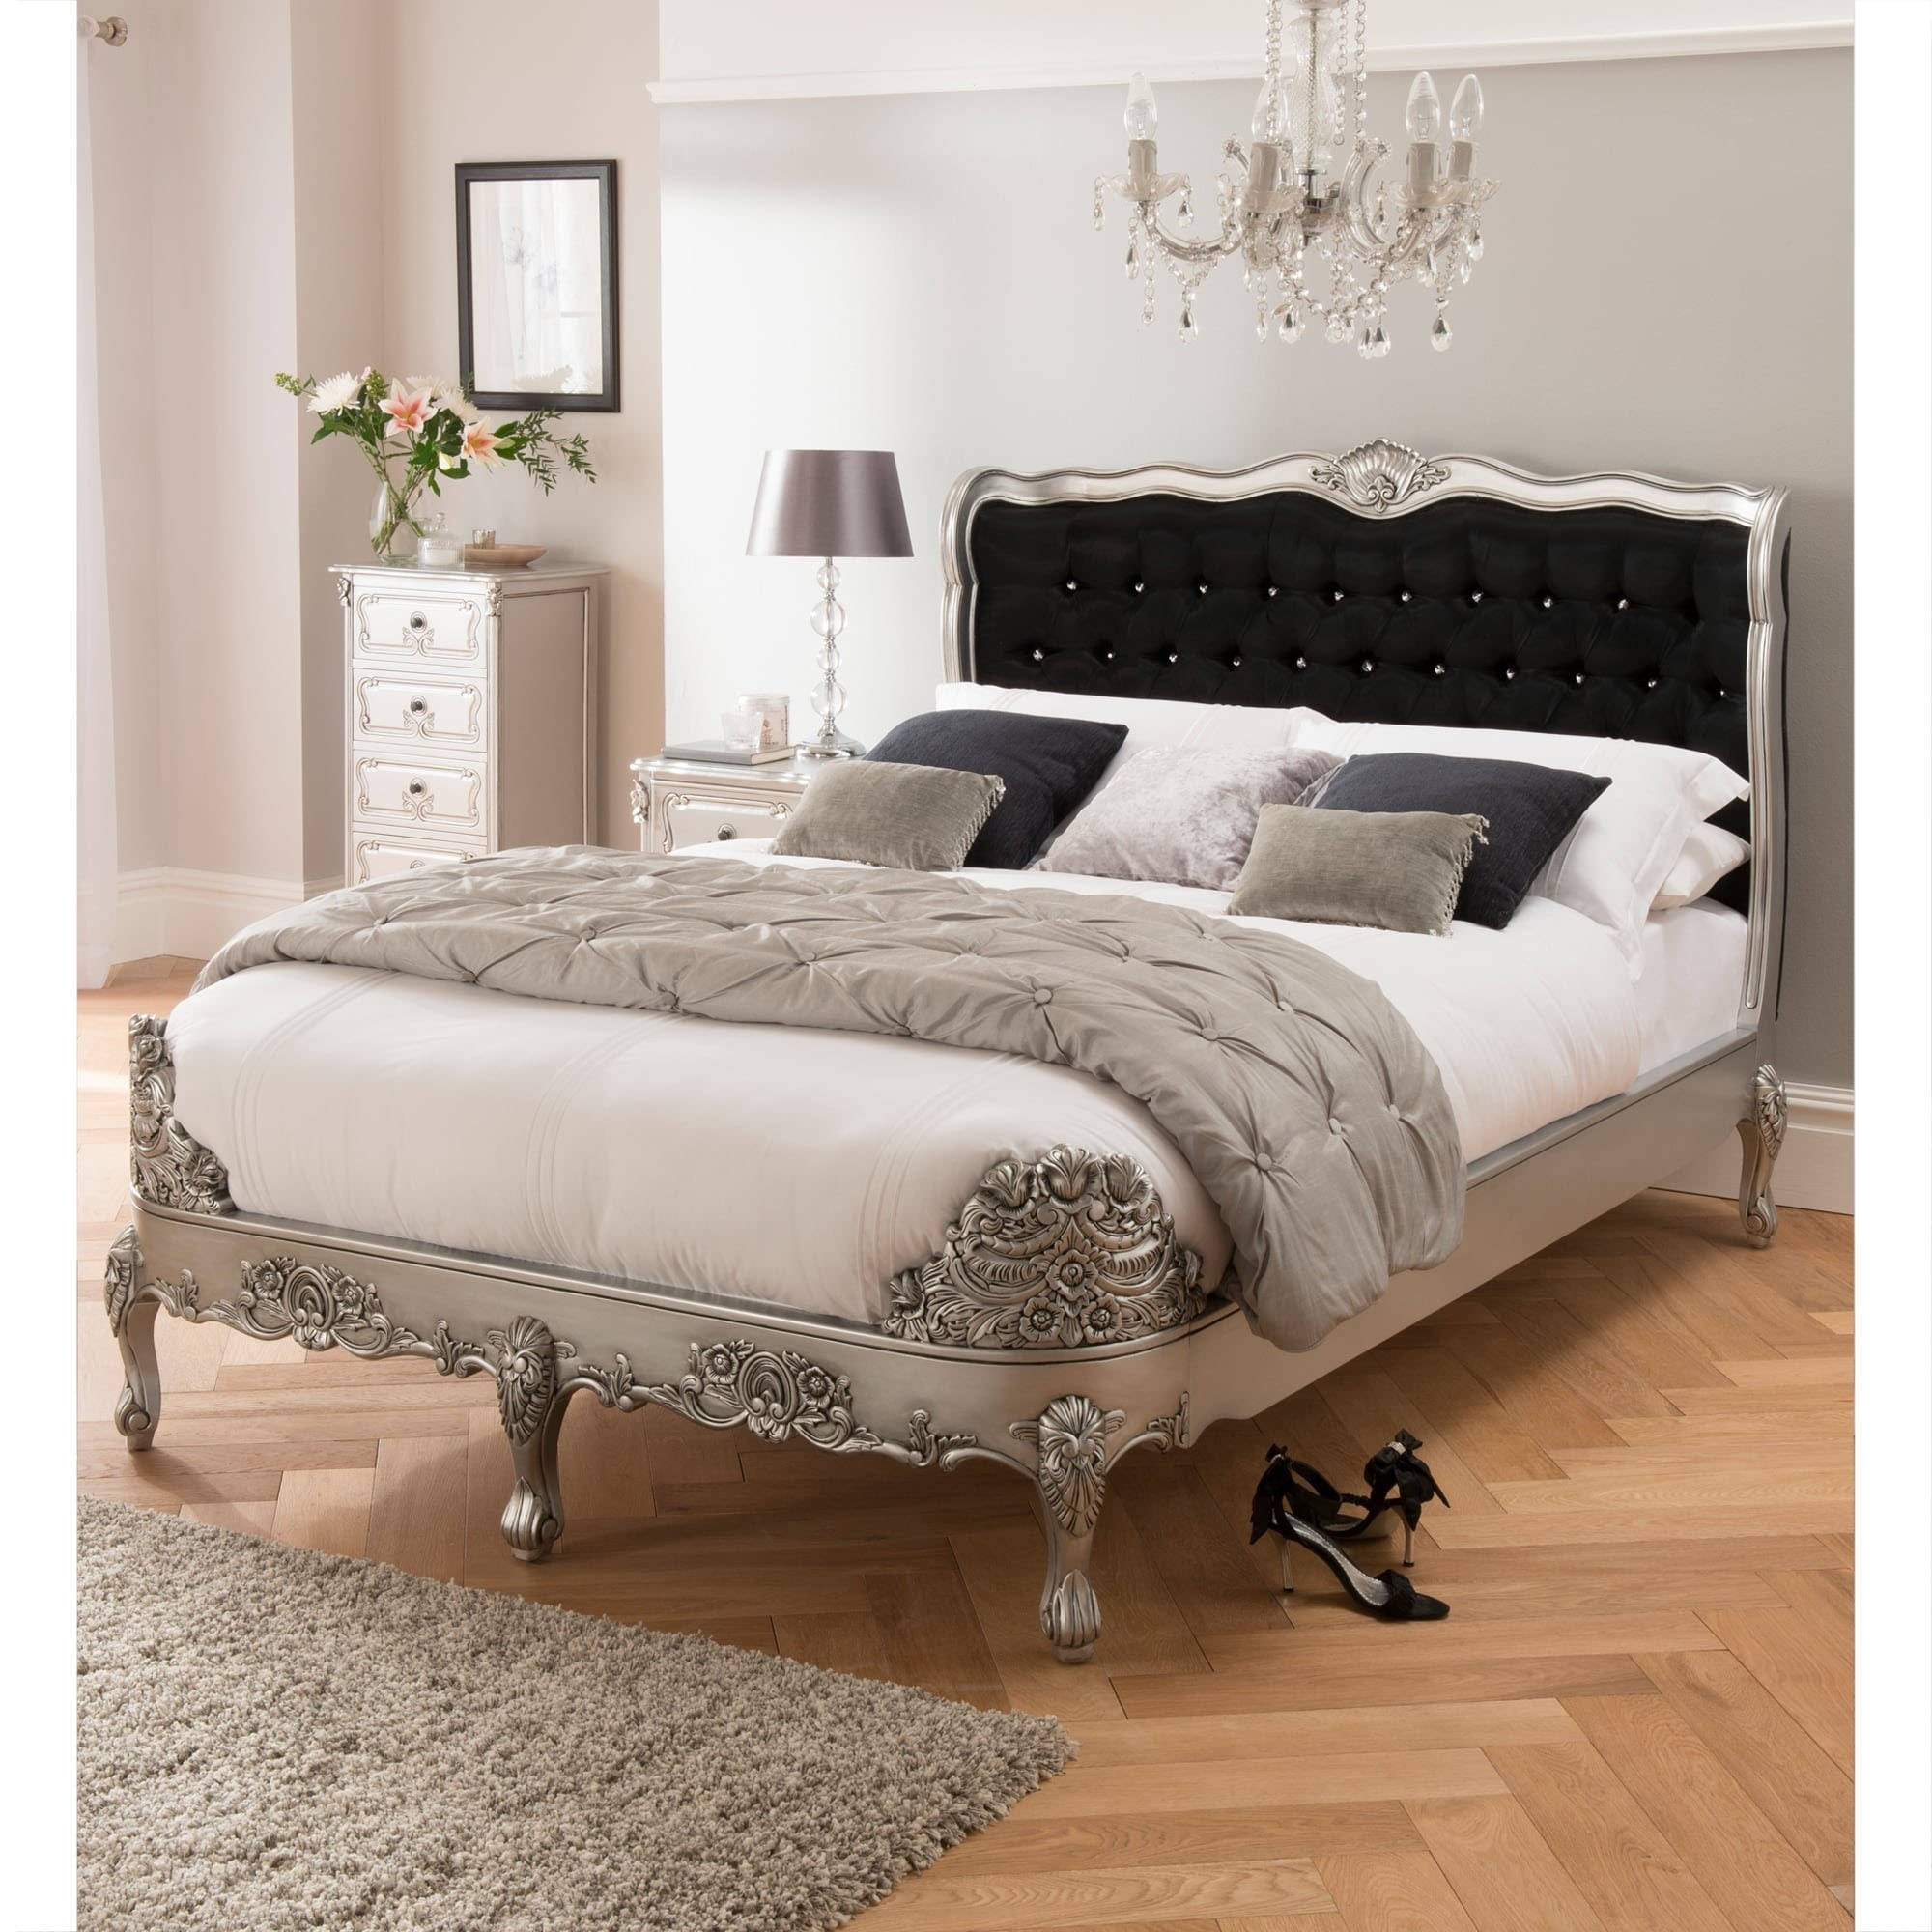 Picture of: Upholstered Baroque Antique French Style Bed French Furniture Online